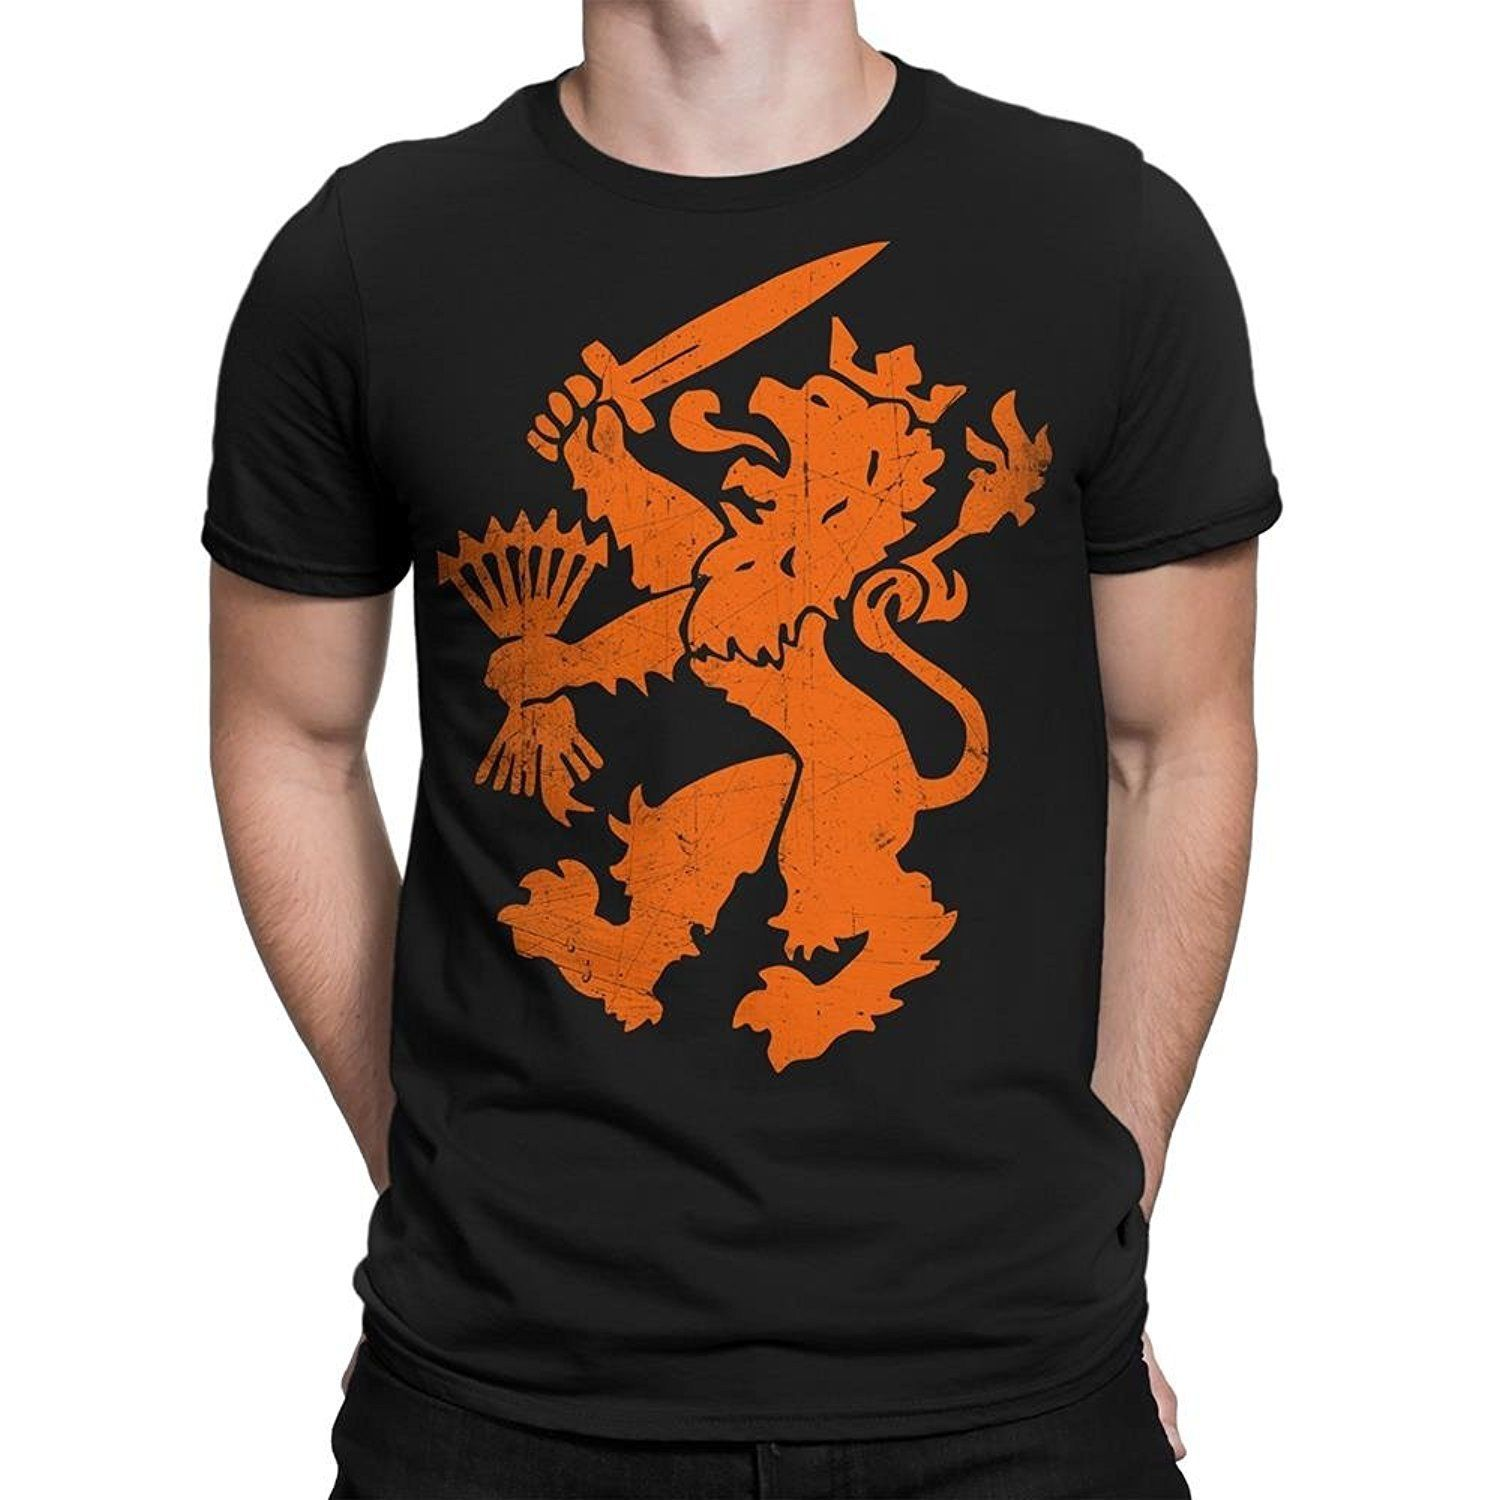 Nyc Factory Netherlands T-Shirt Dutch Oranje Lion Men Tee netherlands-tee-men-b Free shipping Tops Fashion Classic Unique 1